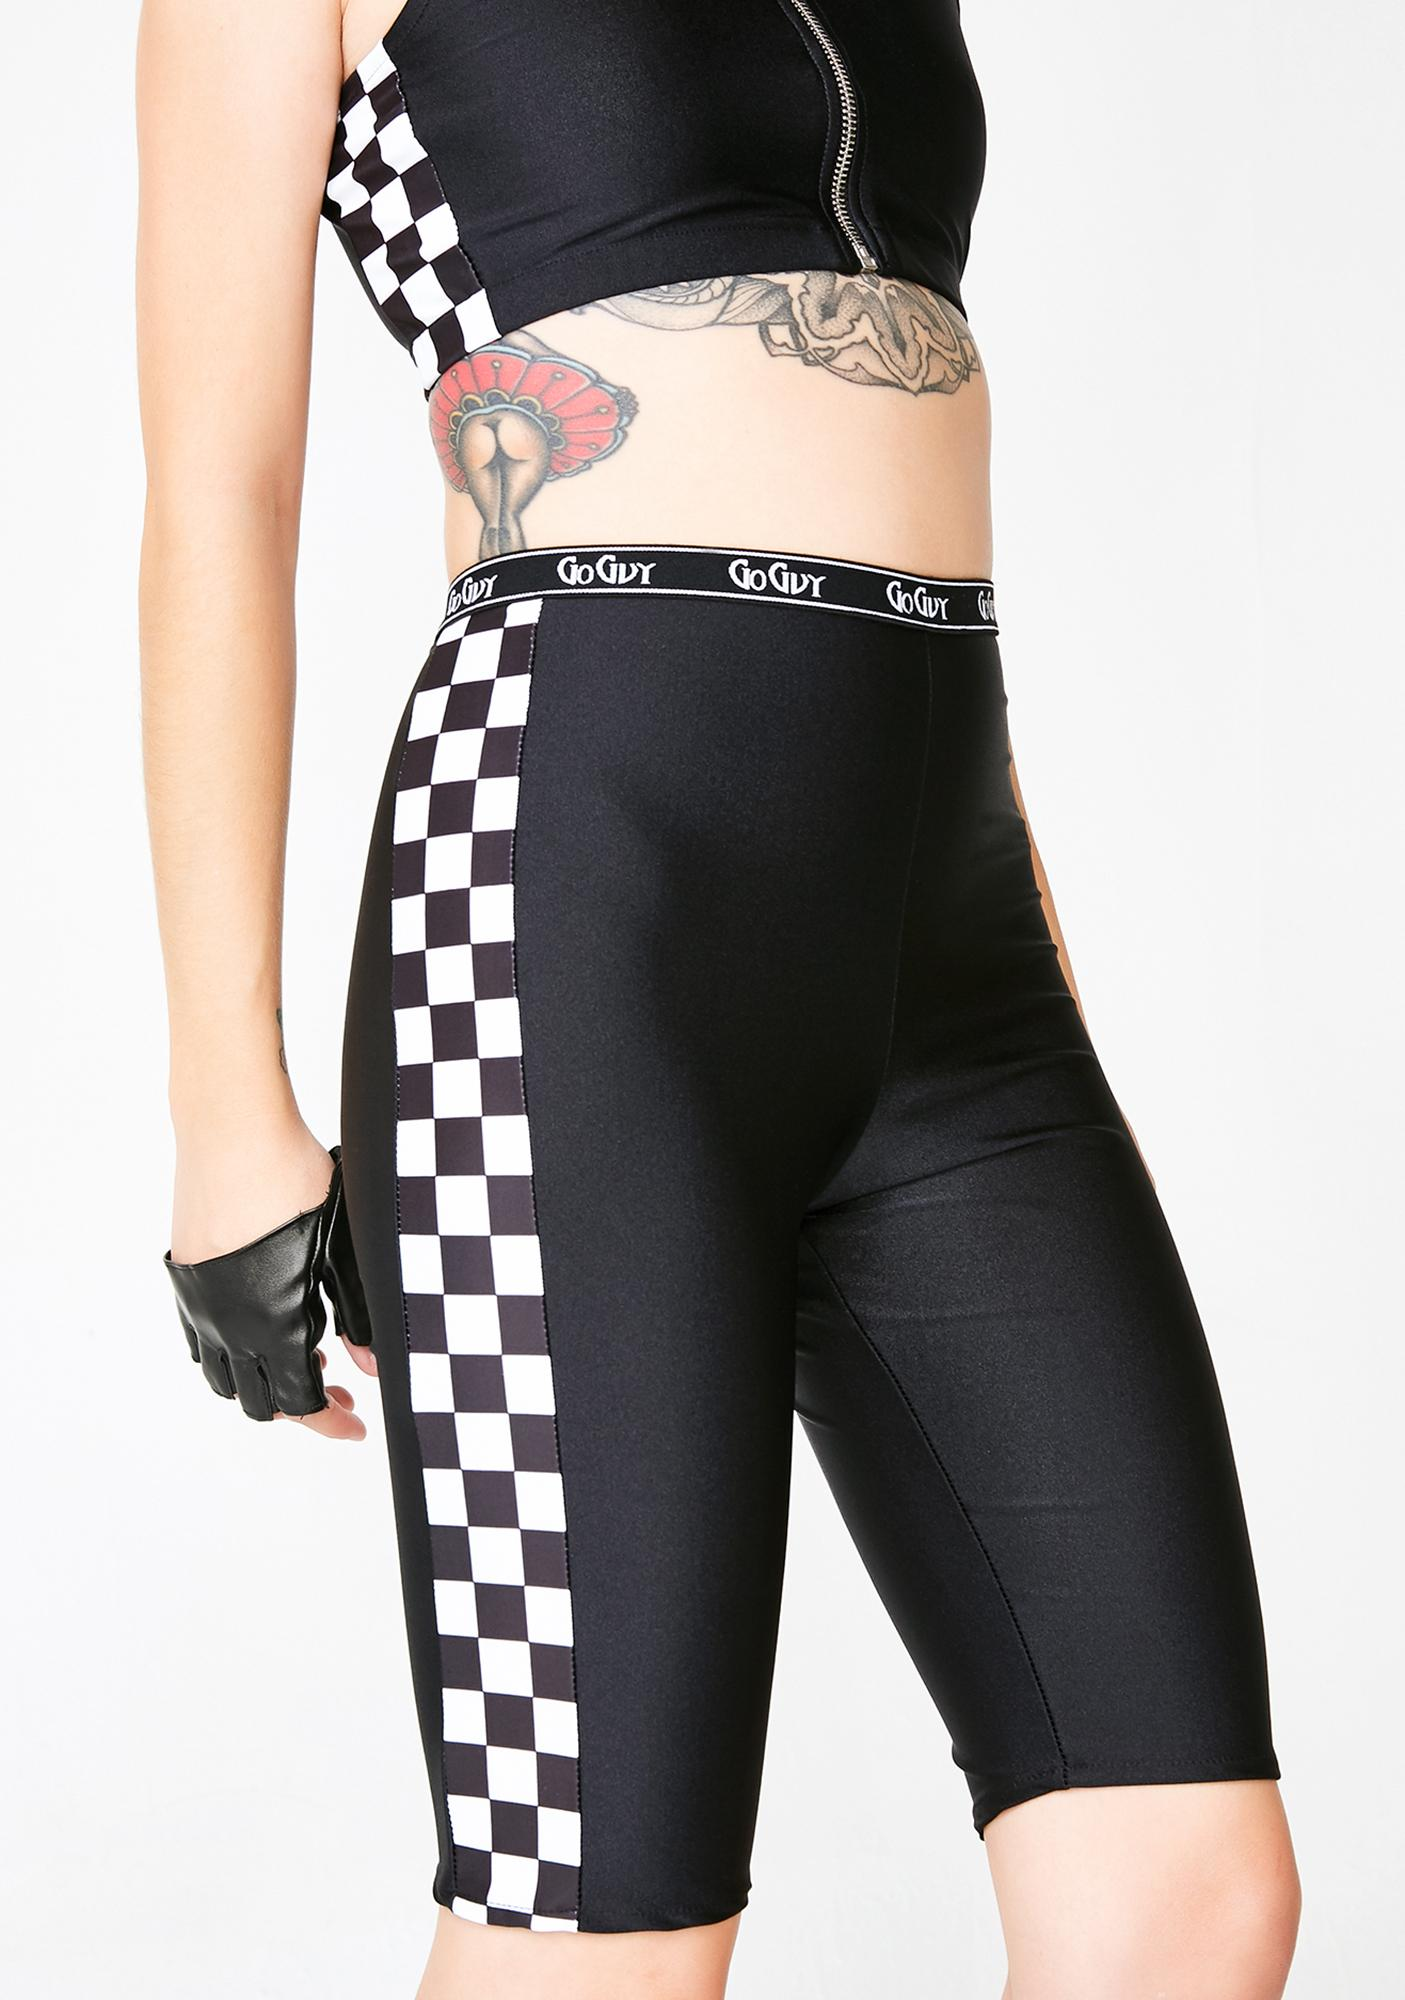 GoGuy Checkerboard Panel Cycling Shorts